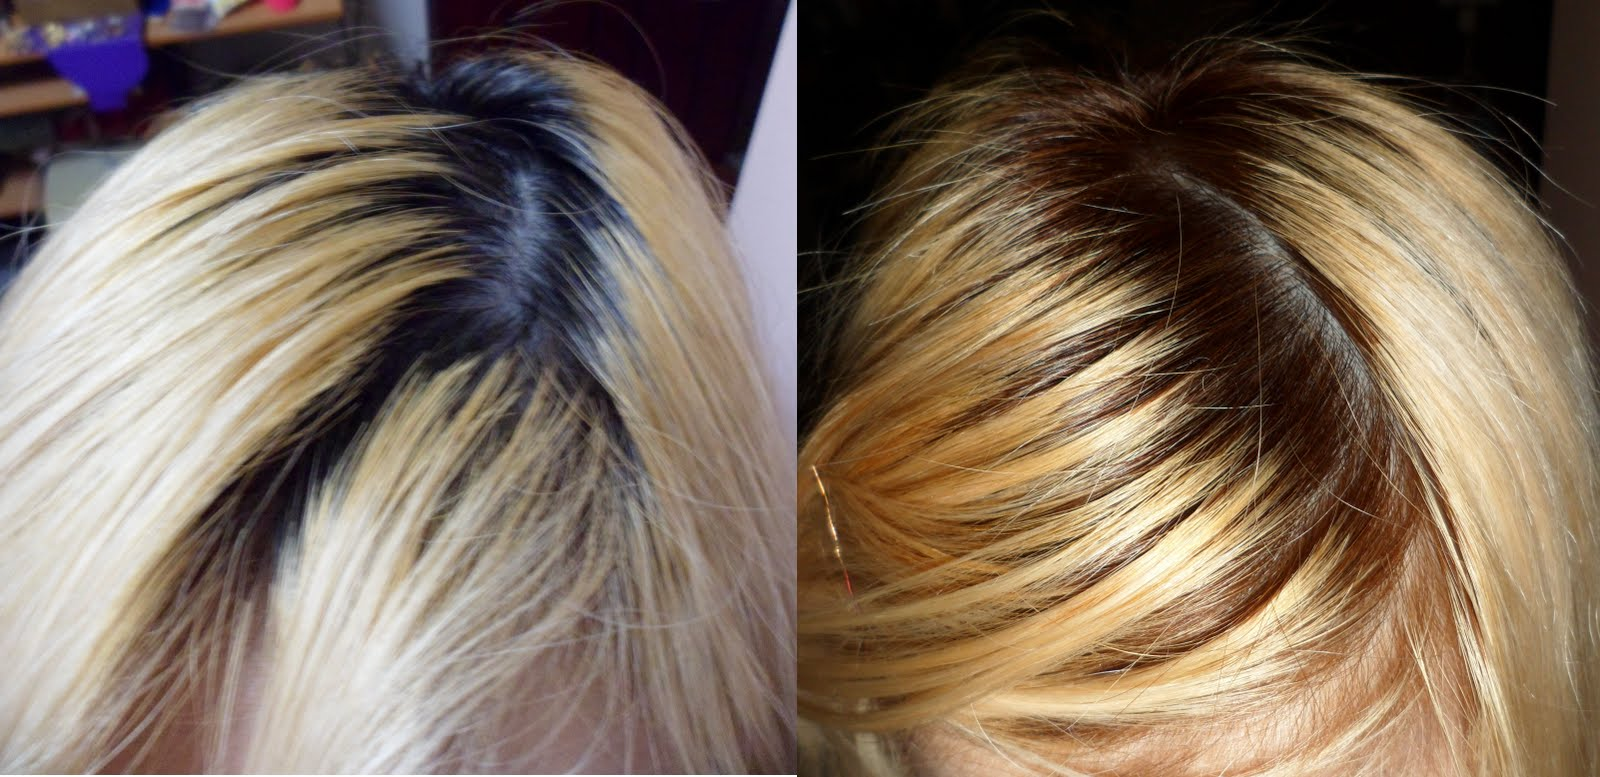 Palty Hair Dye Philippinespin Palty Japanese Hair Color Philippines